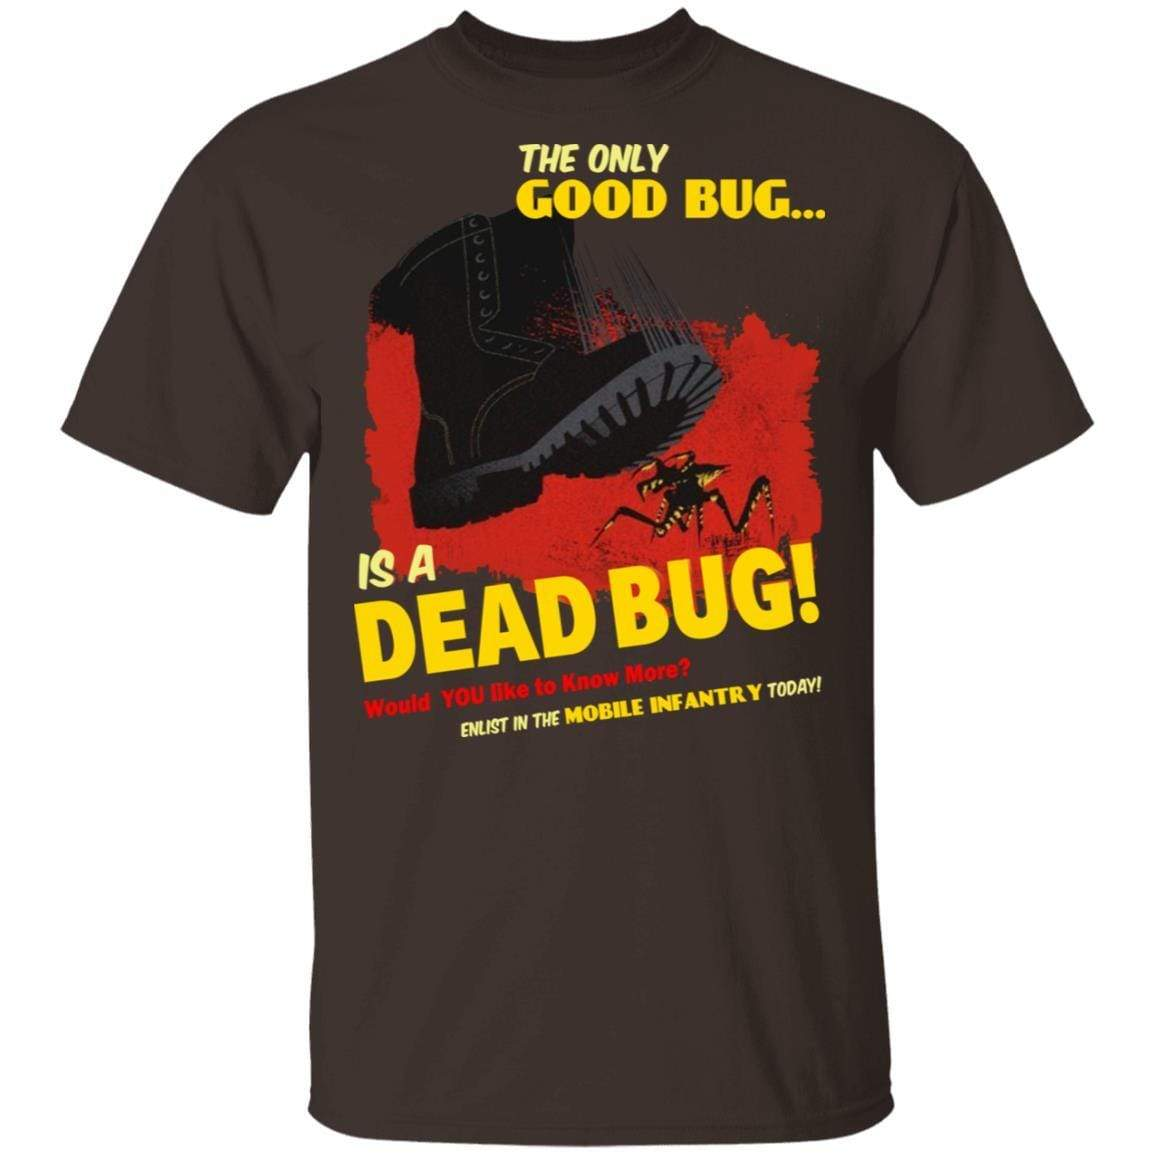 The Only Good Bug Is A Dead Bug Would You Like To Know More Enlist In The Mobile Infantry Today T-Shirts, Hoodies 1049-9956-91821633-48152 - Tee Ript